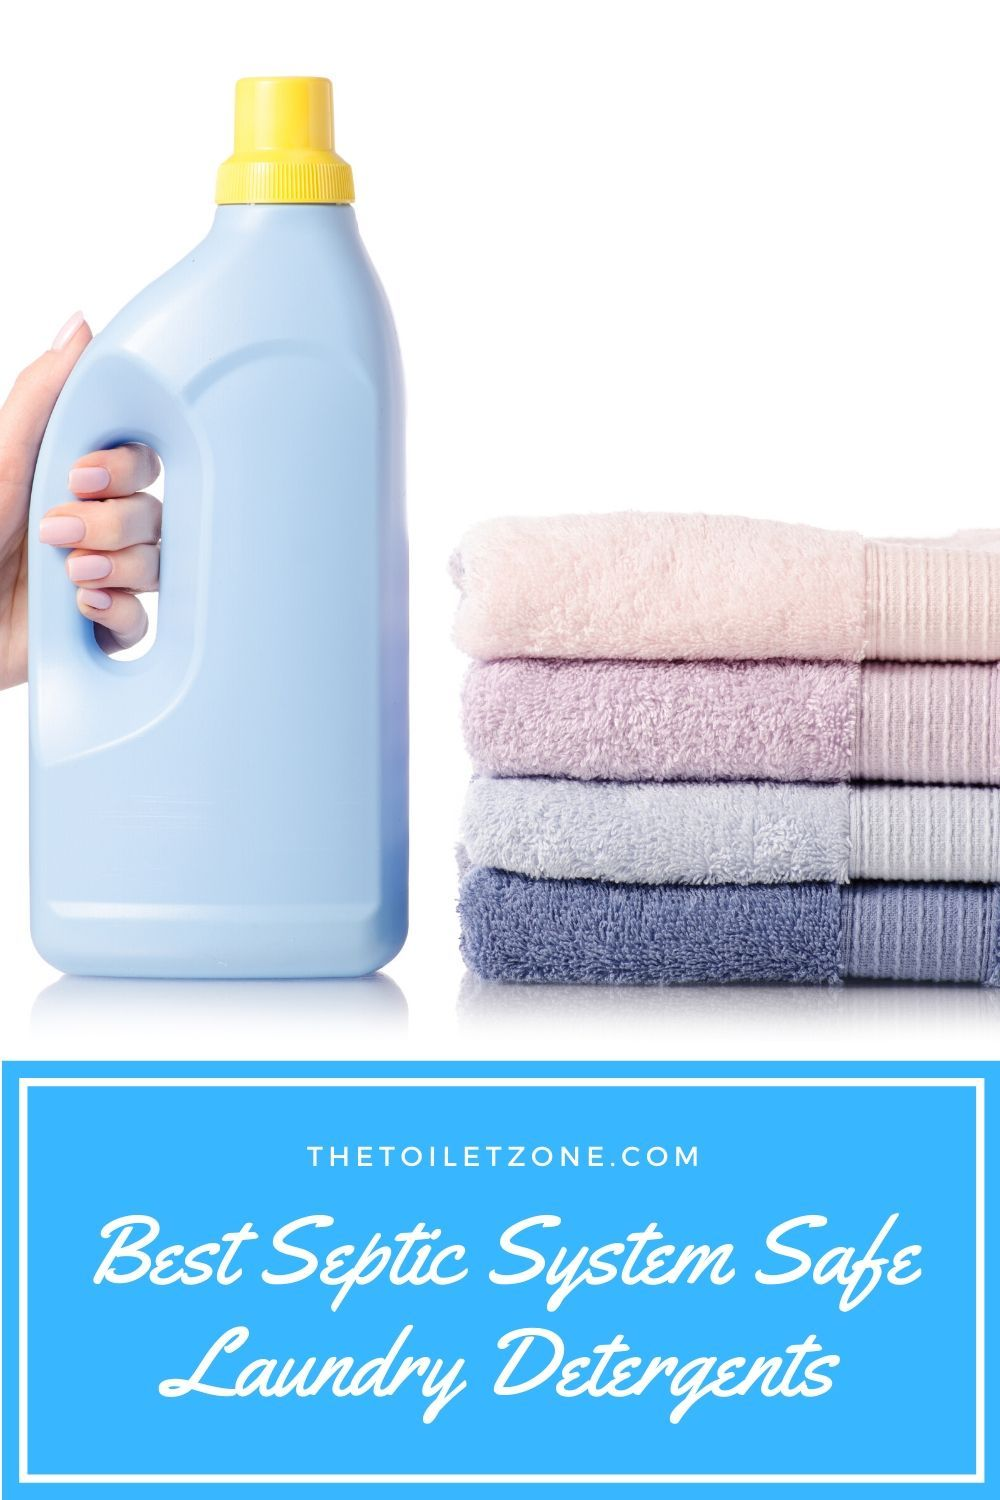 Septic Safe Laundry Detergents